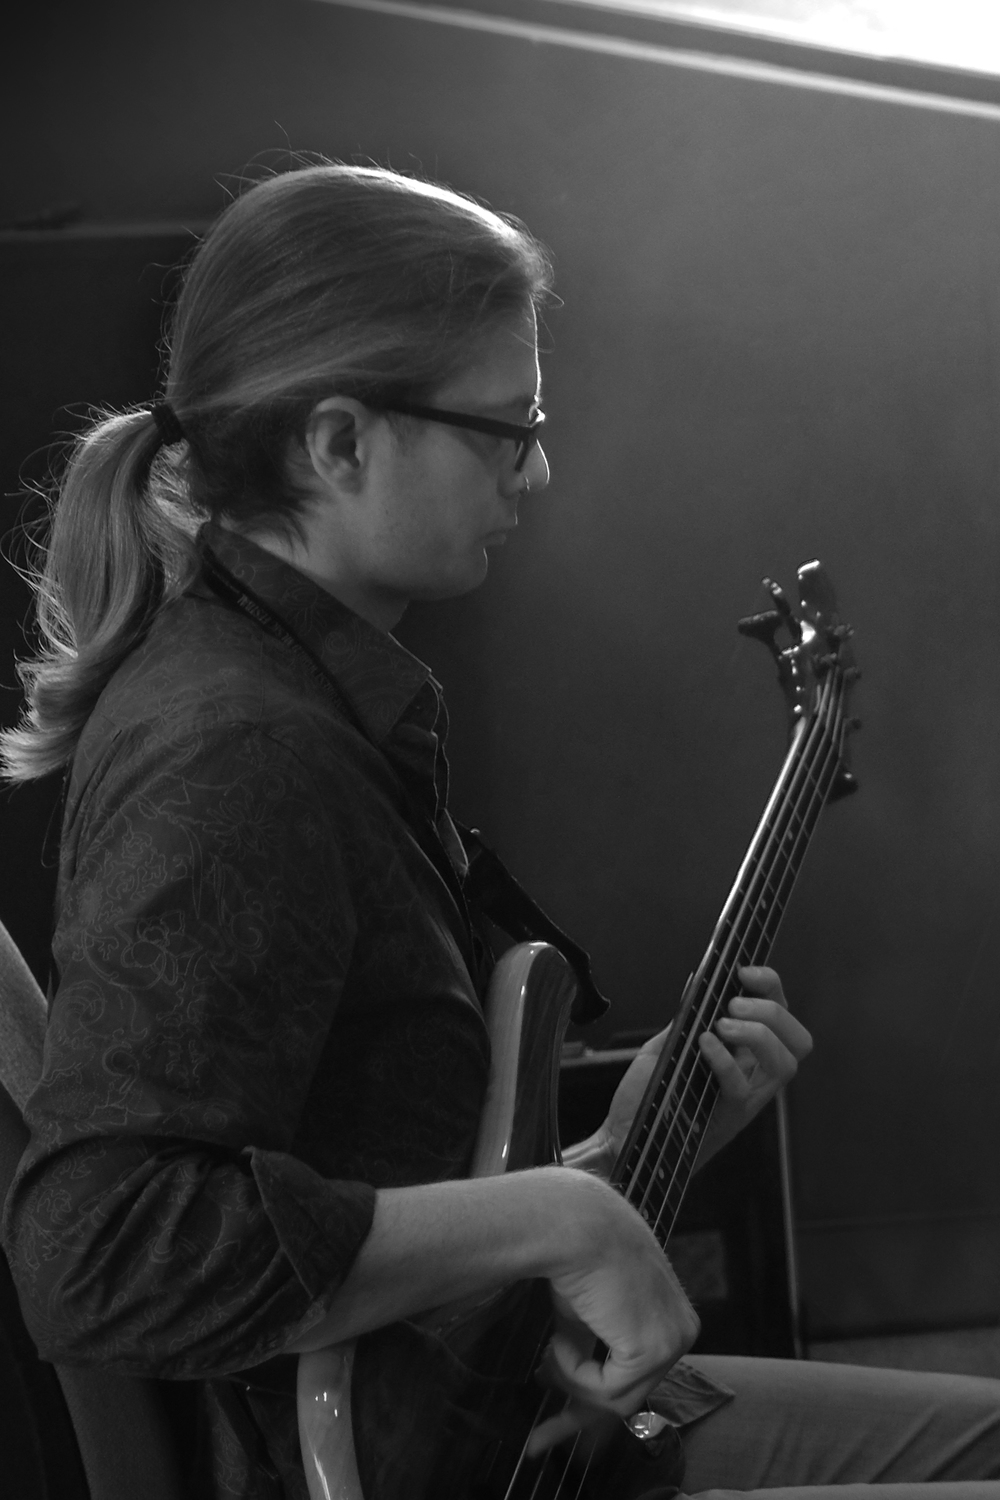 David de la Haye - Bass and electronics